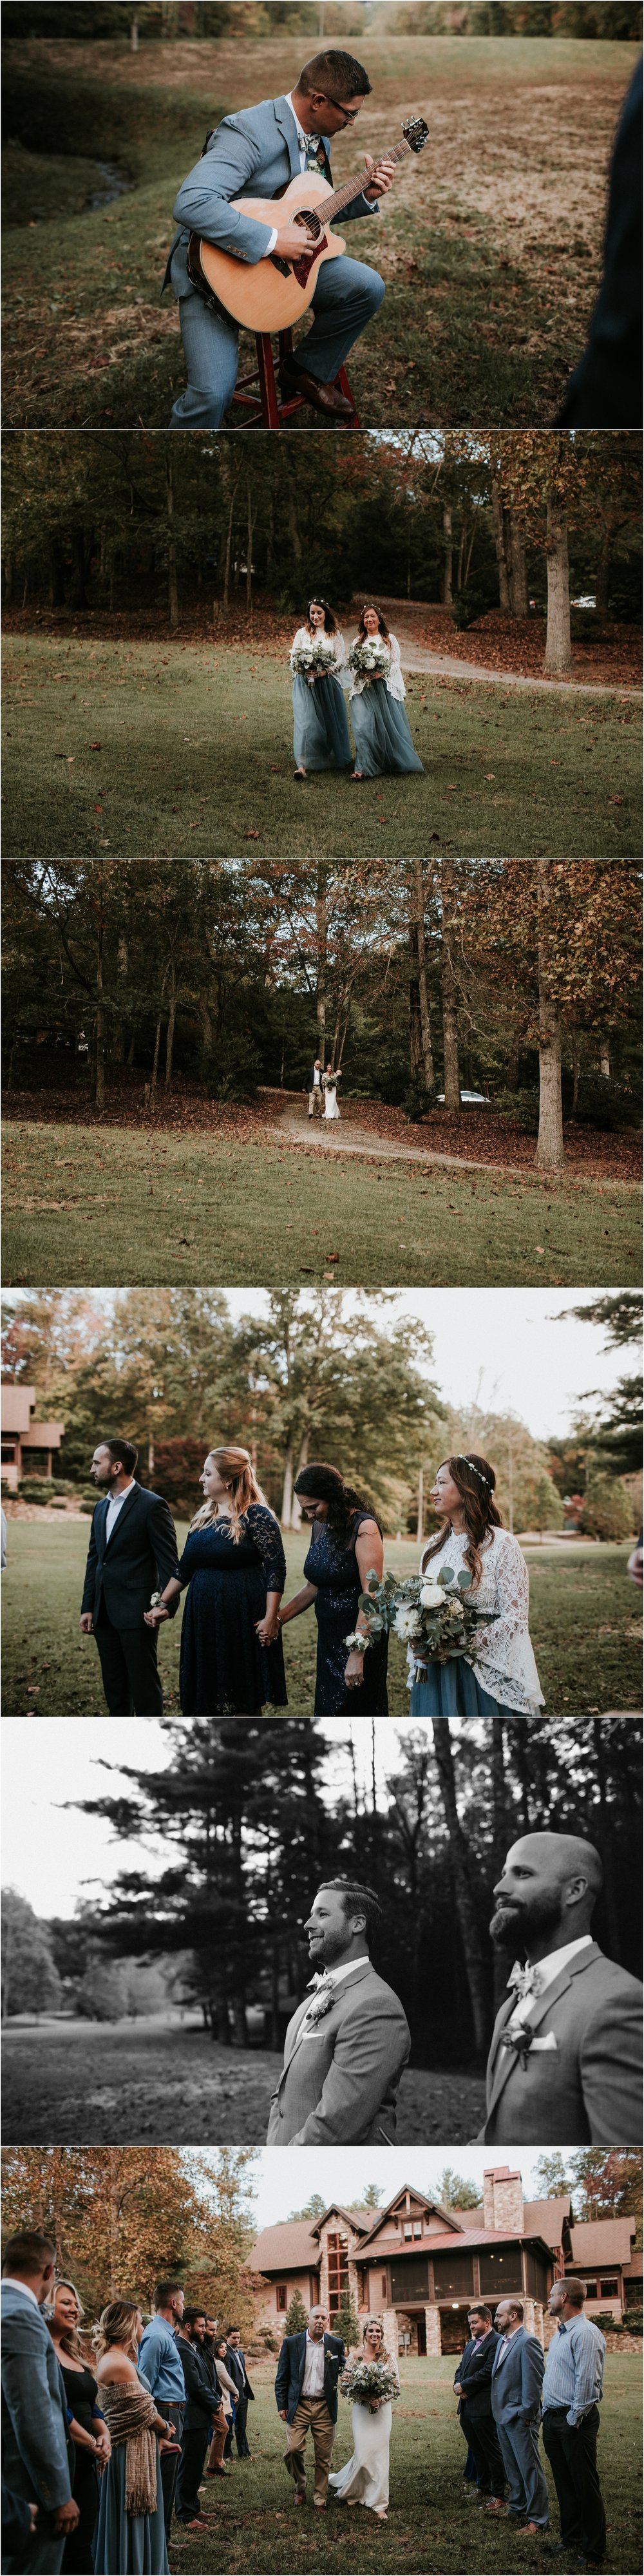 saluda-wedding-photographer_0020.jpg